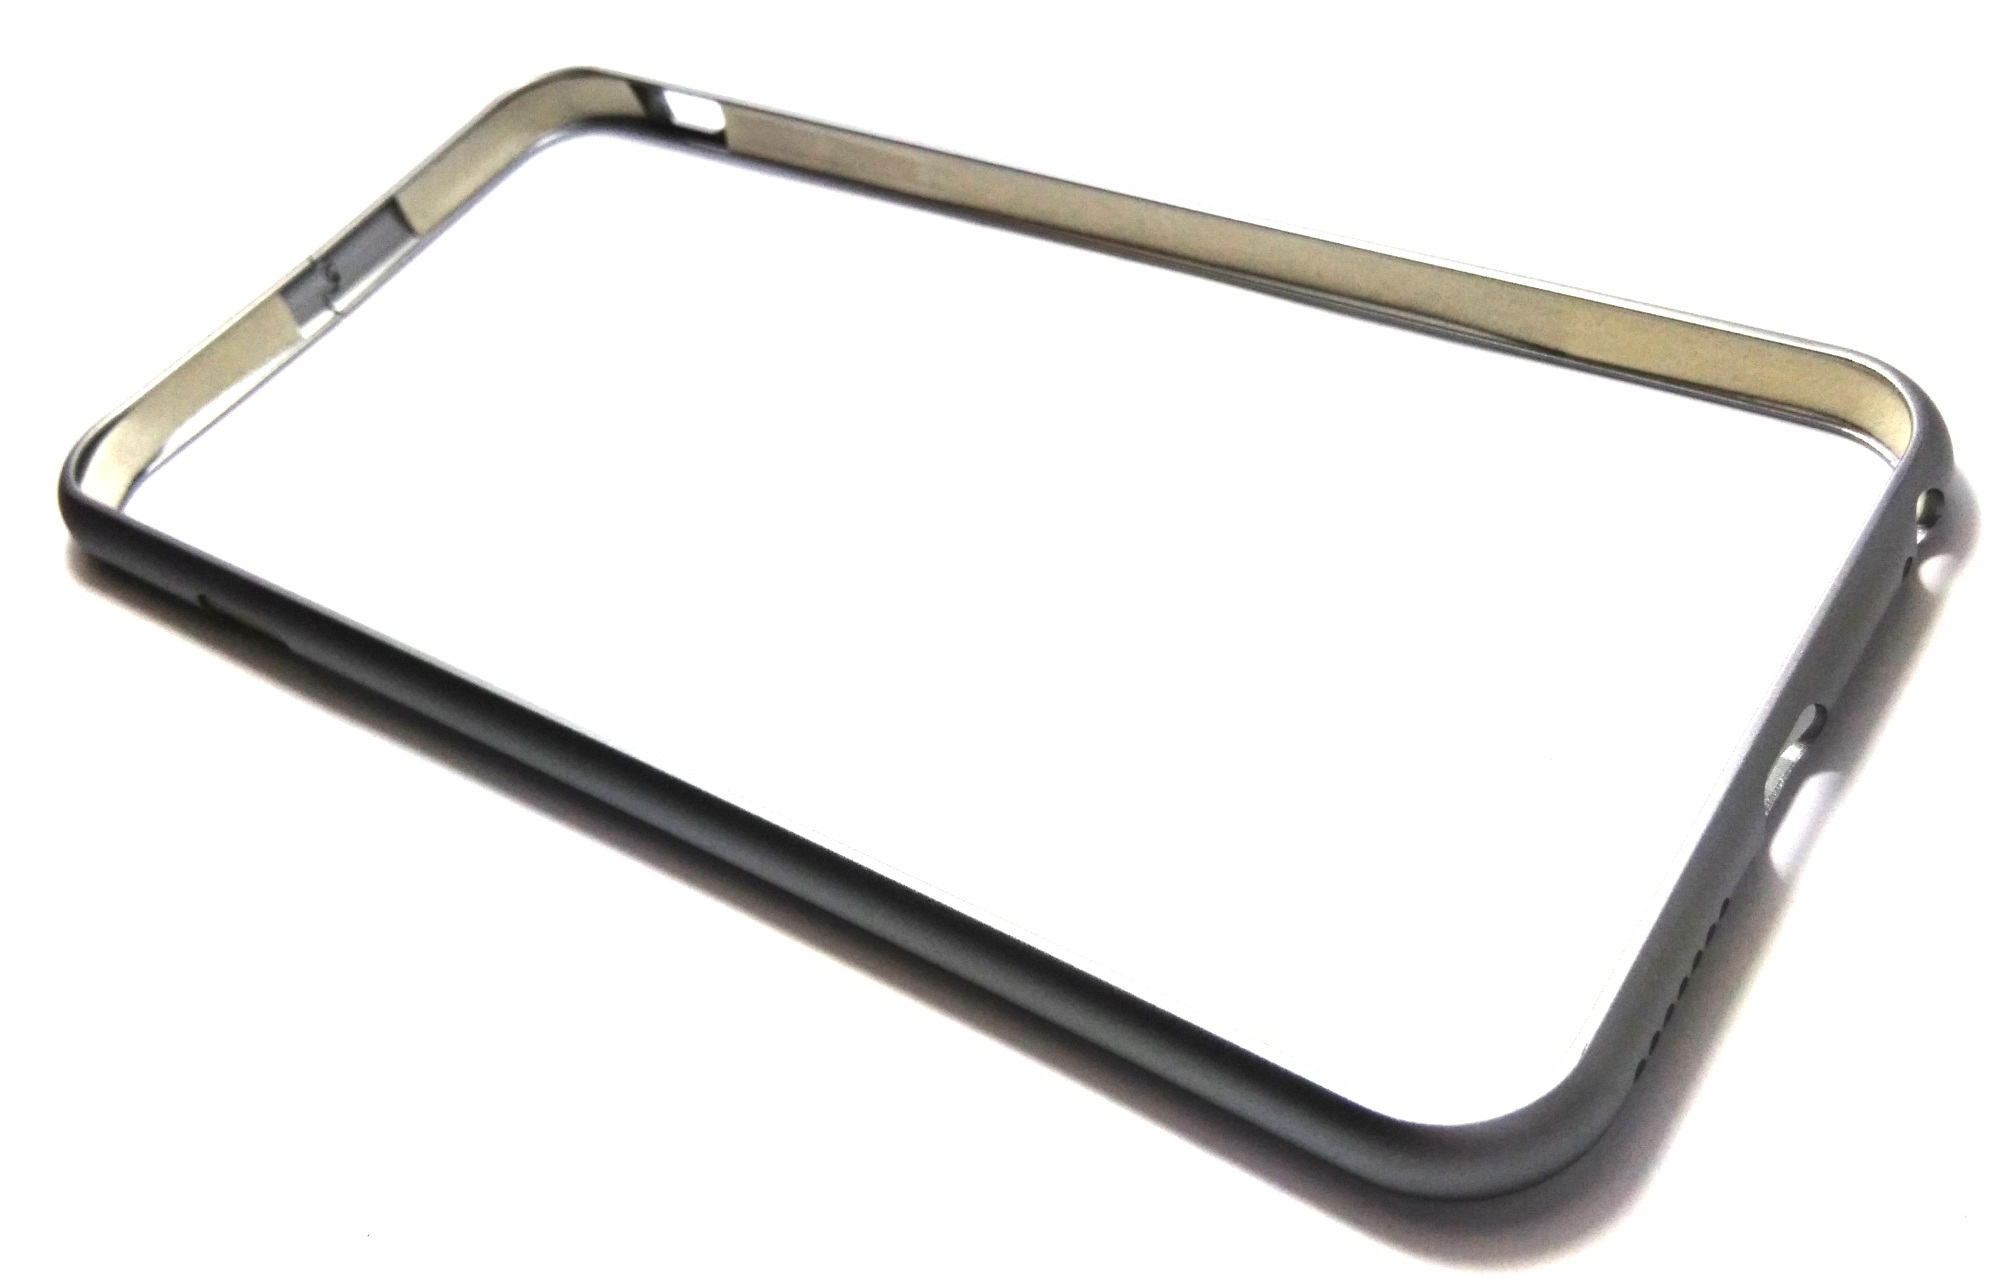 "Sleek Metal Bumper for 5.5"" iPhone 6 Plus/6s Plus (Dark Grey)"